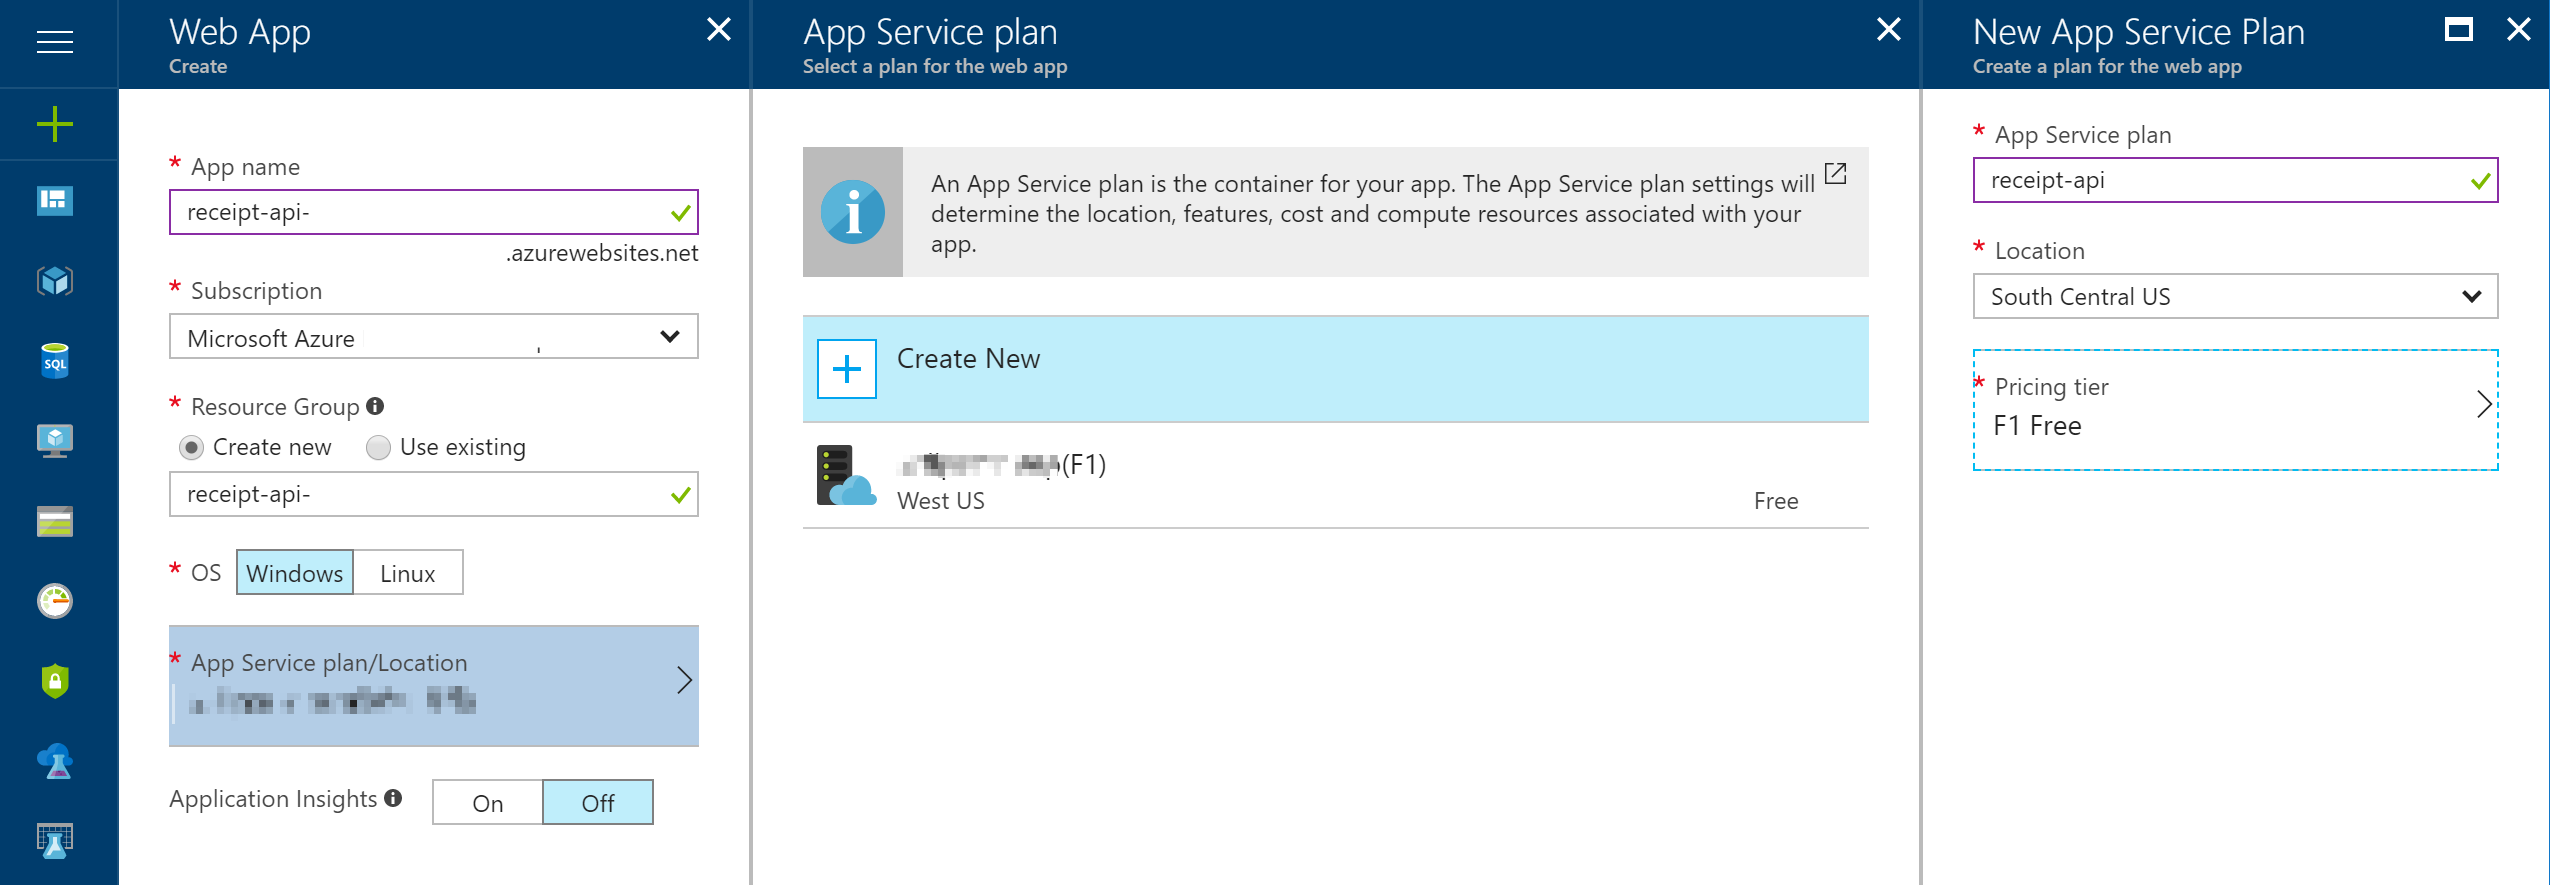 create app service plan screenshot